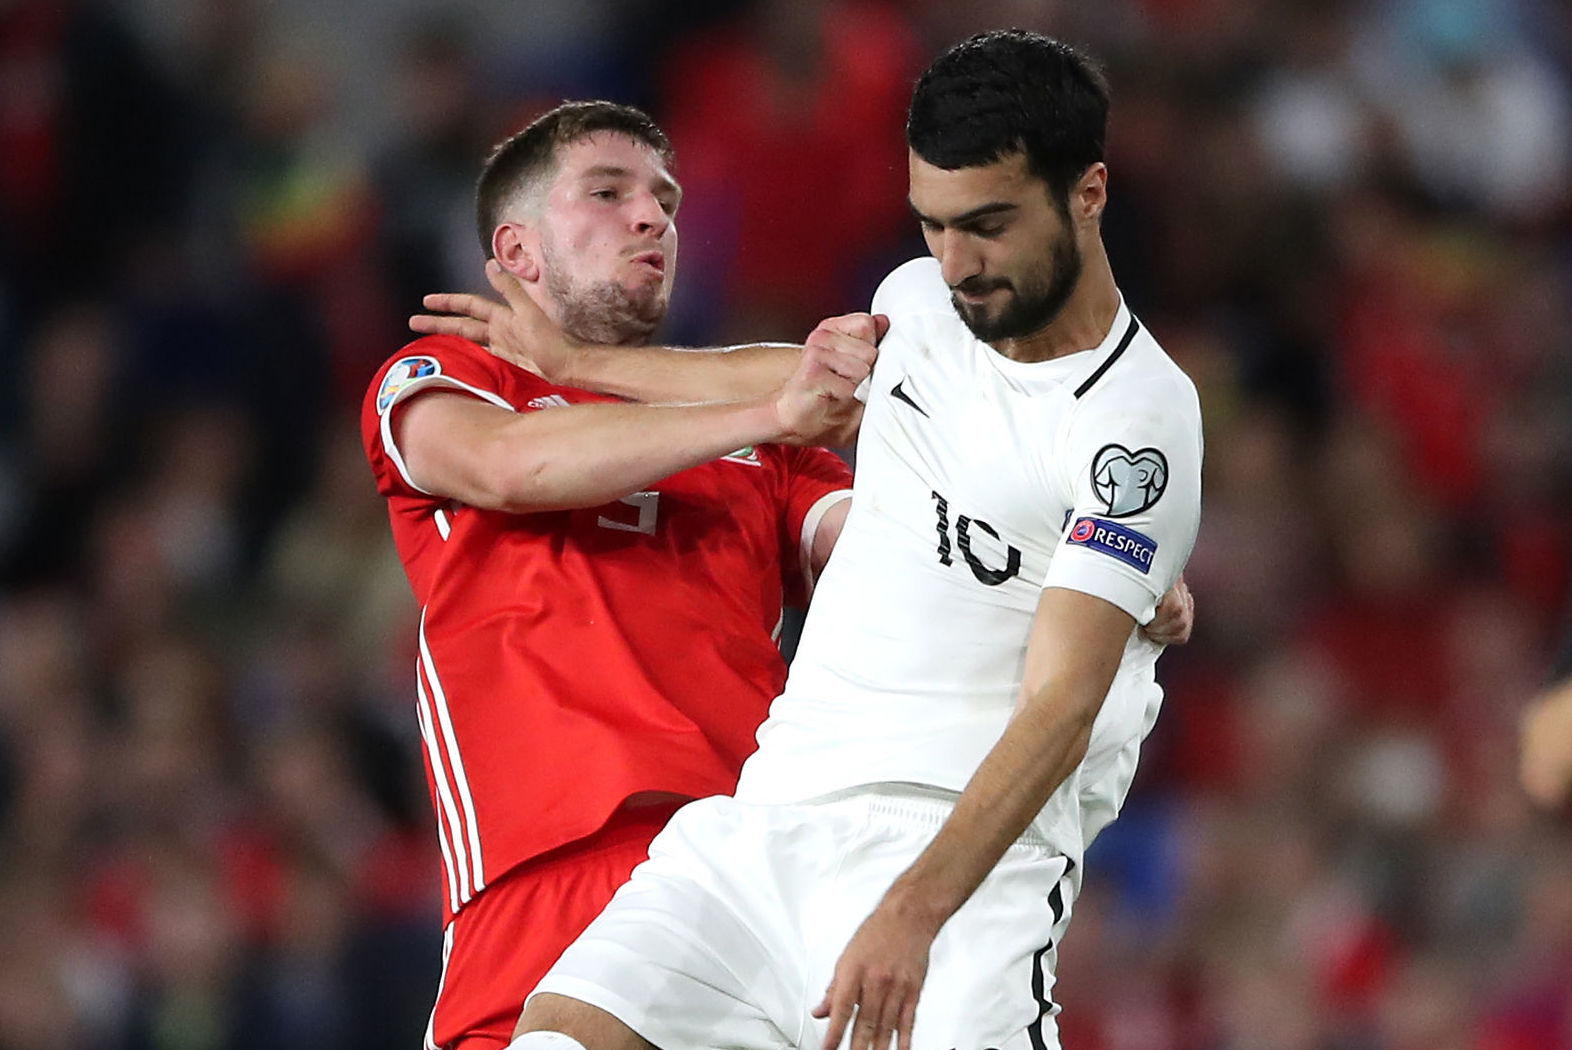 Injury concern for AFC Bournemouth as Chris Mepham is withdrawn on Wales duty